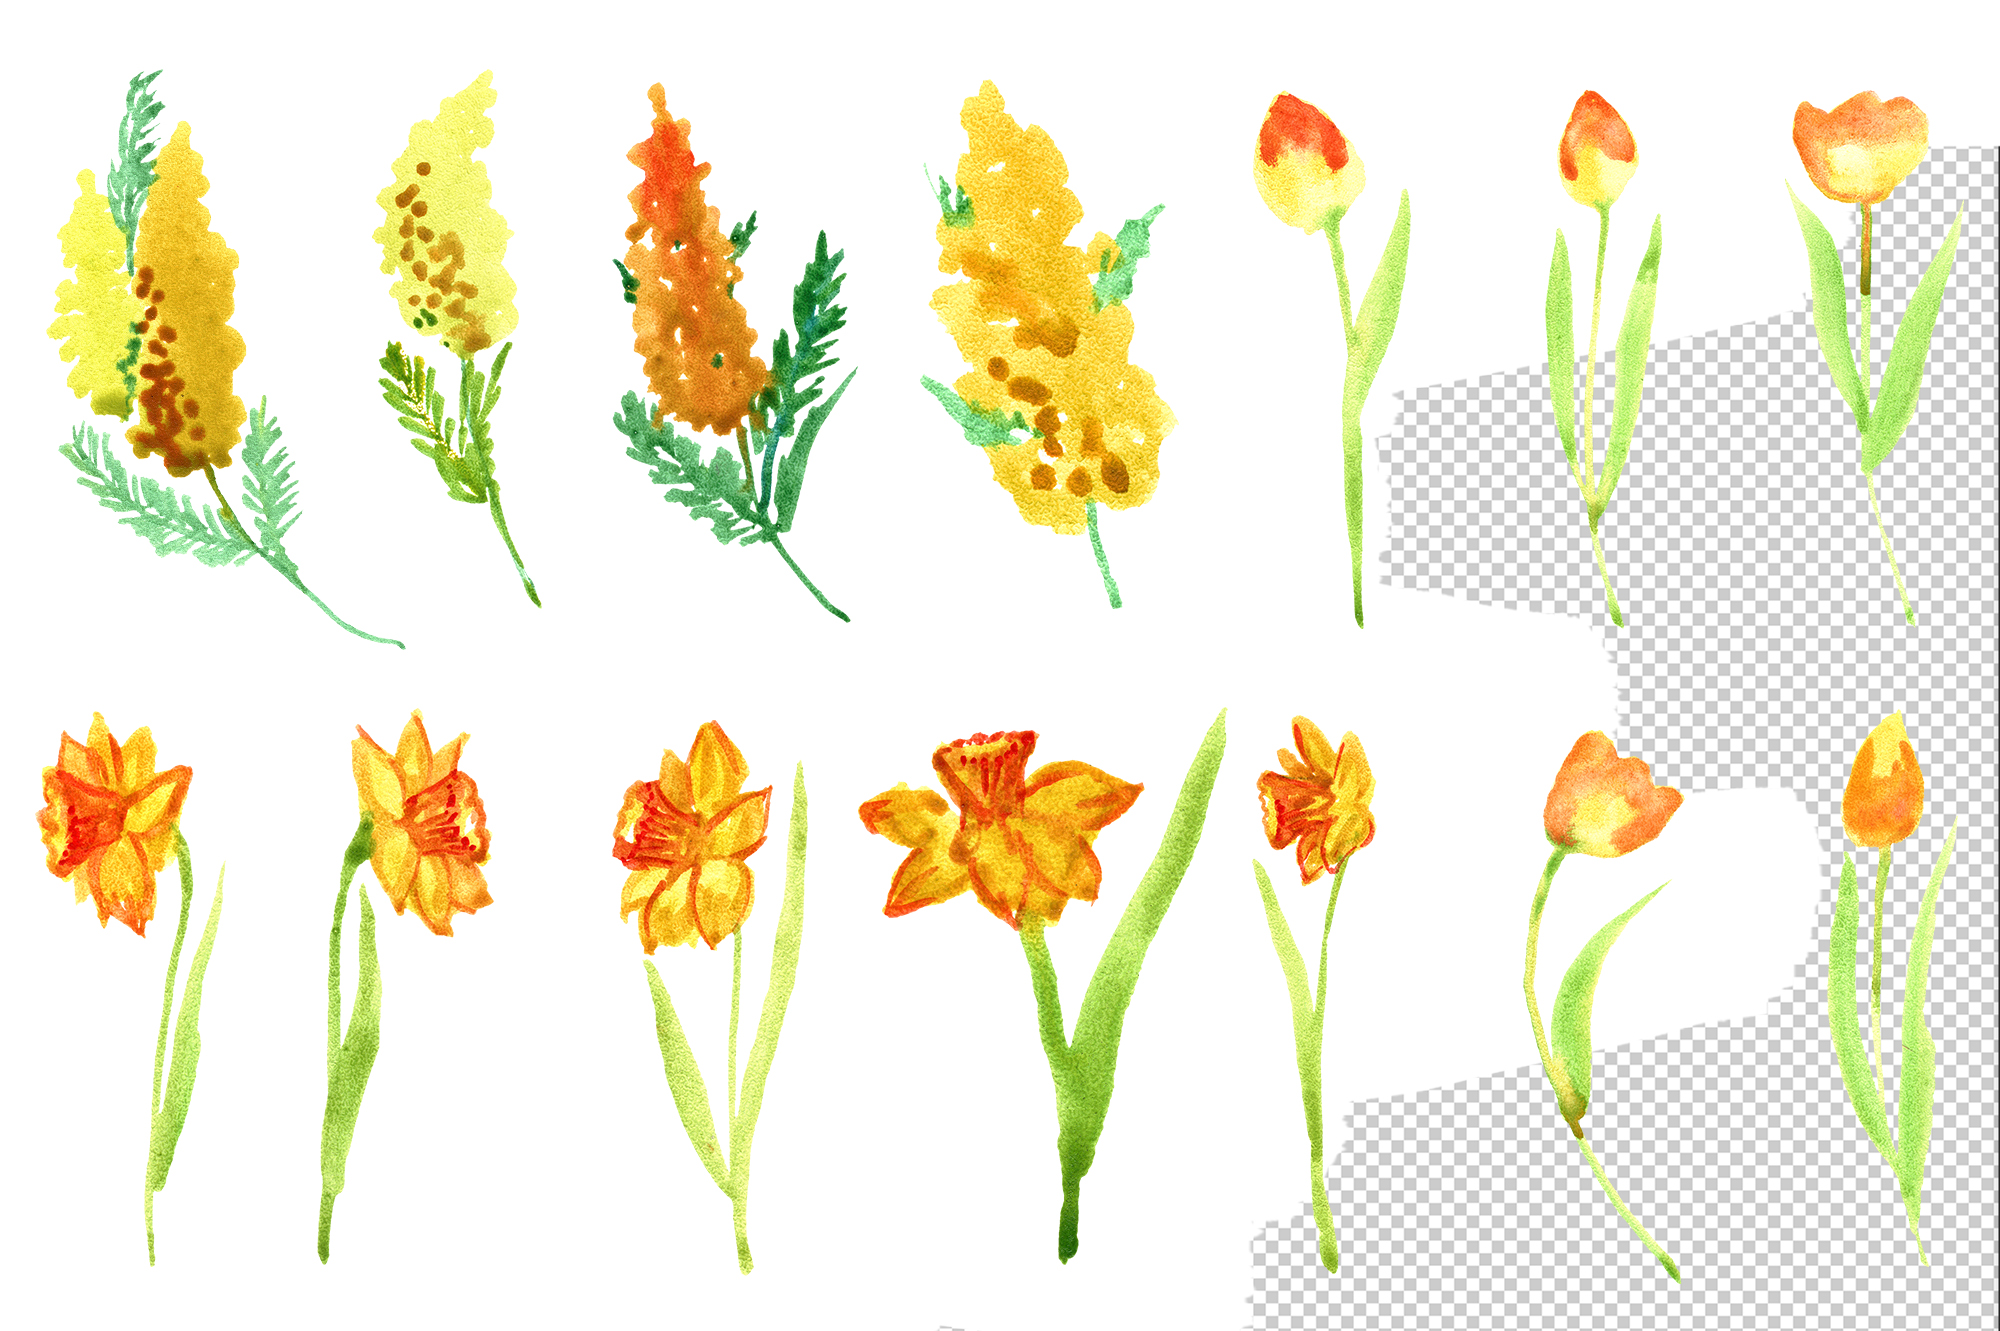 Watercolor yellow spring flowers example image 4